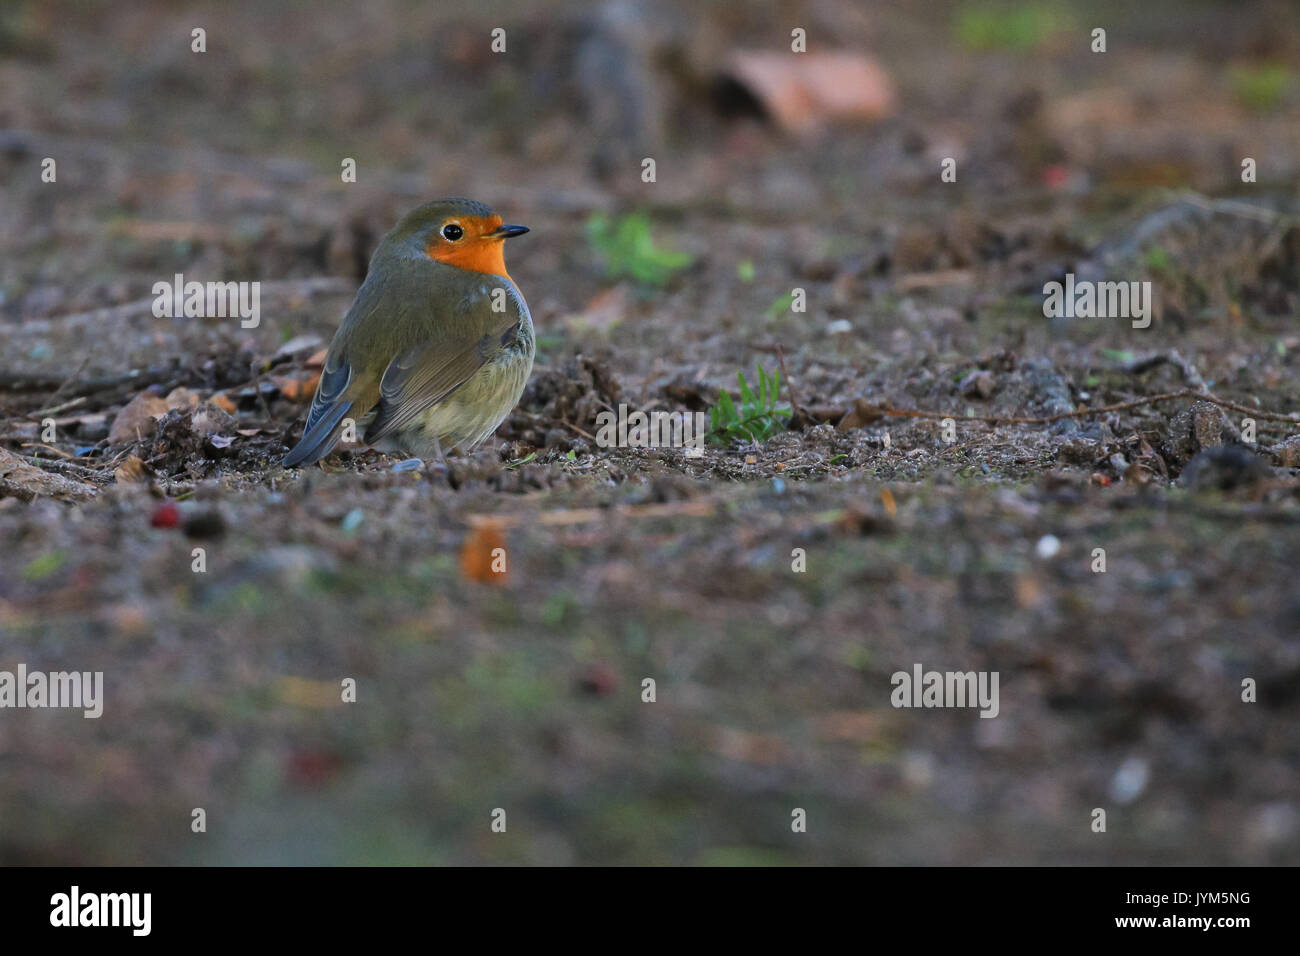 European Robin, Erithacus rubecula sitting on ground Stock Photo